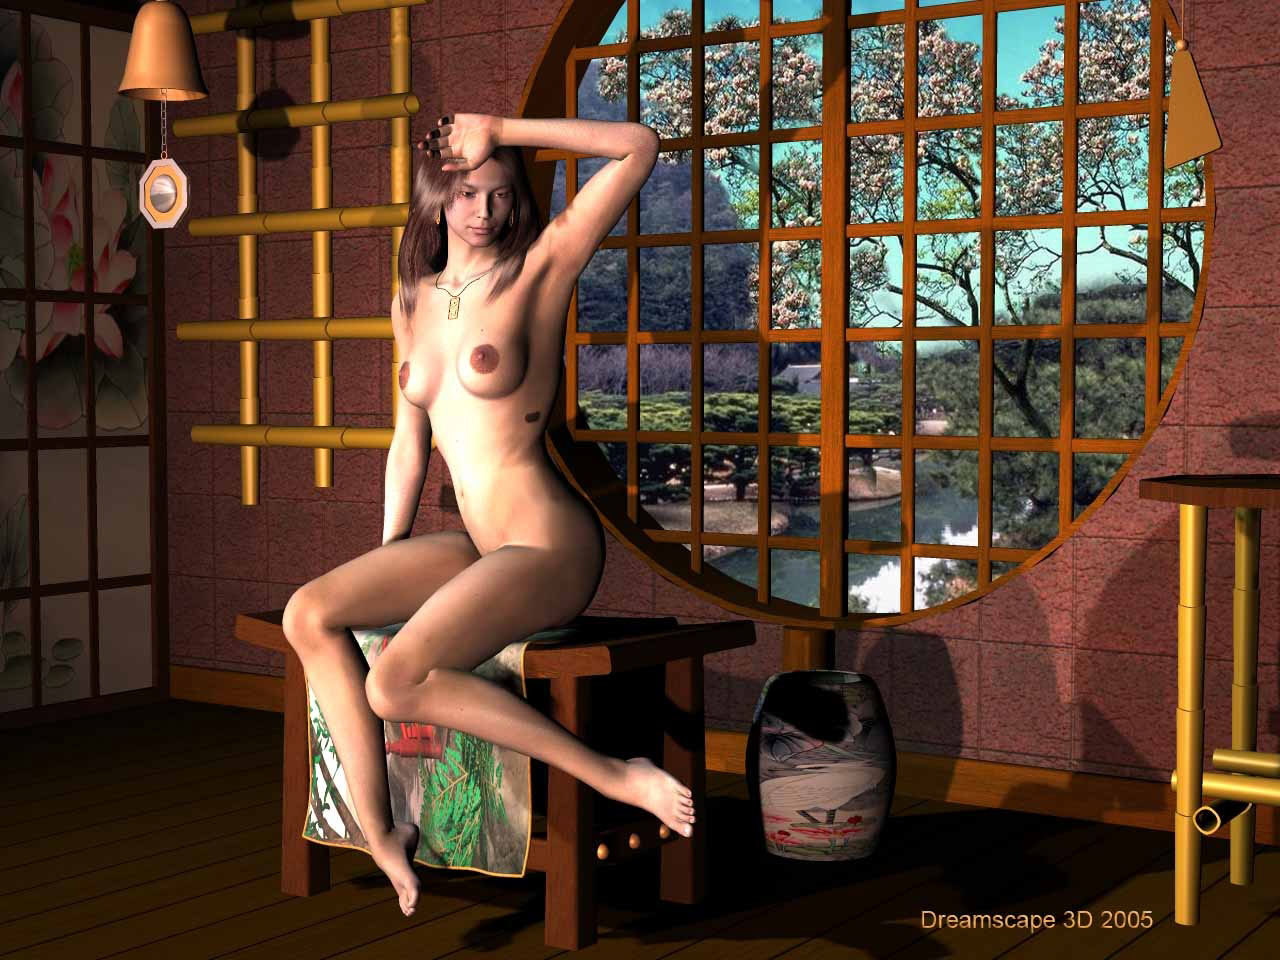 Asian Vision (nudity)